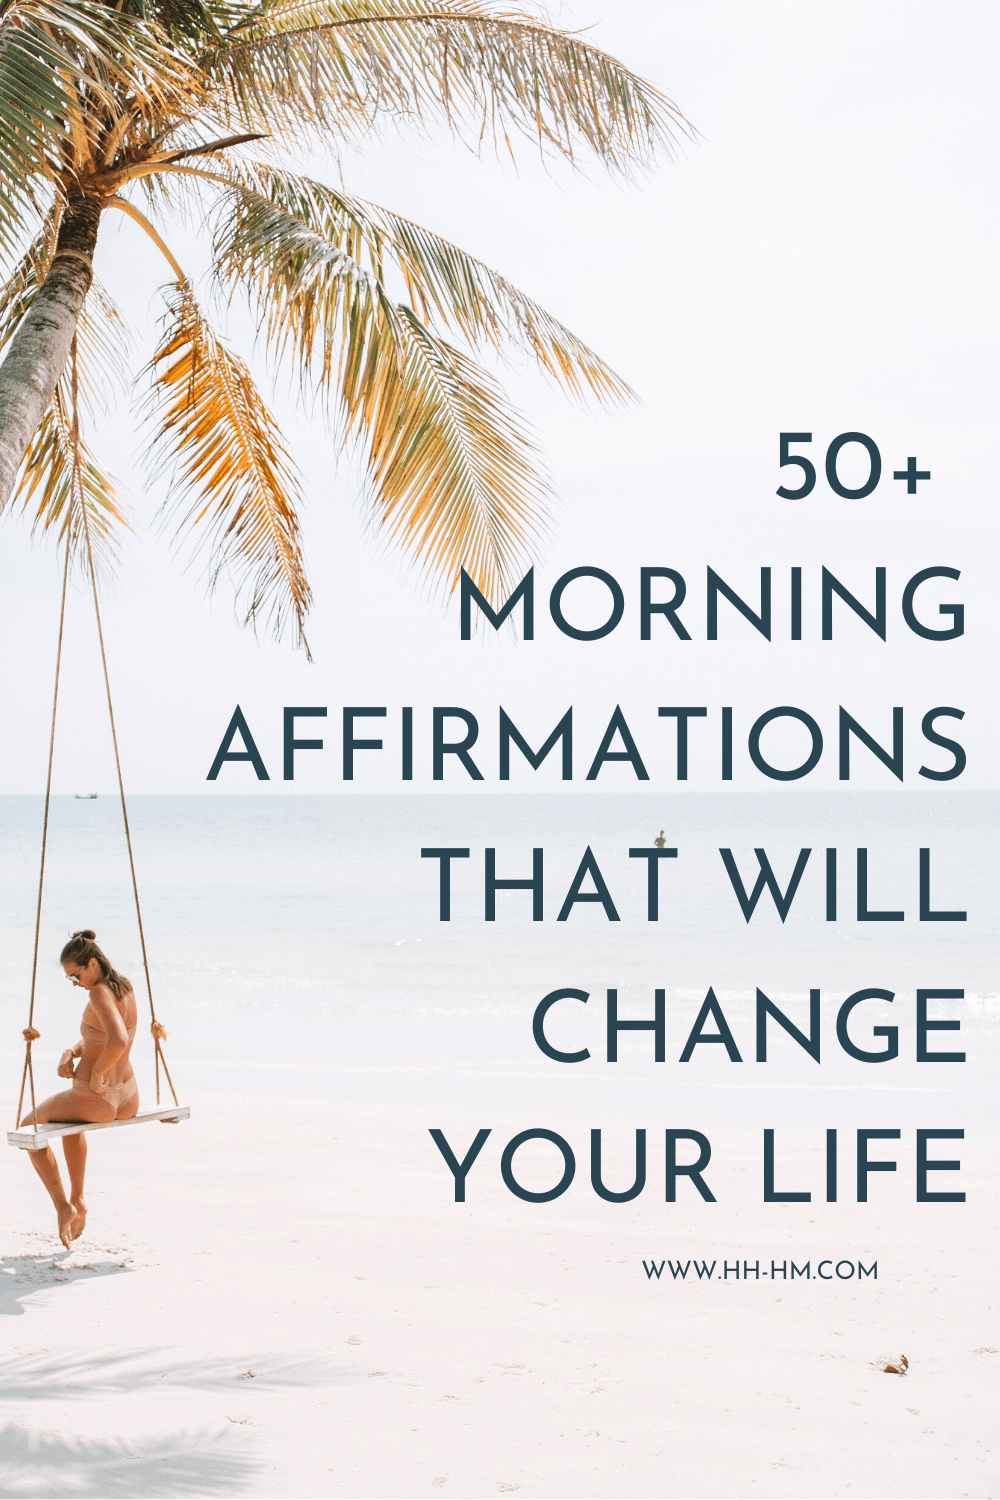 50 positive morning affirmations to say after you wake up to change your life! Get your morning motivation with this list of positive affirmations including affirmations for happiness and abundance, affirmations for self confidence and self love as well as success affirmations to help you succeed in life and in your career!